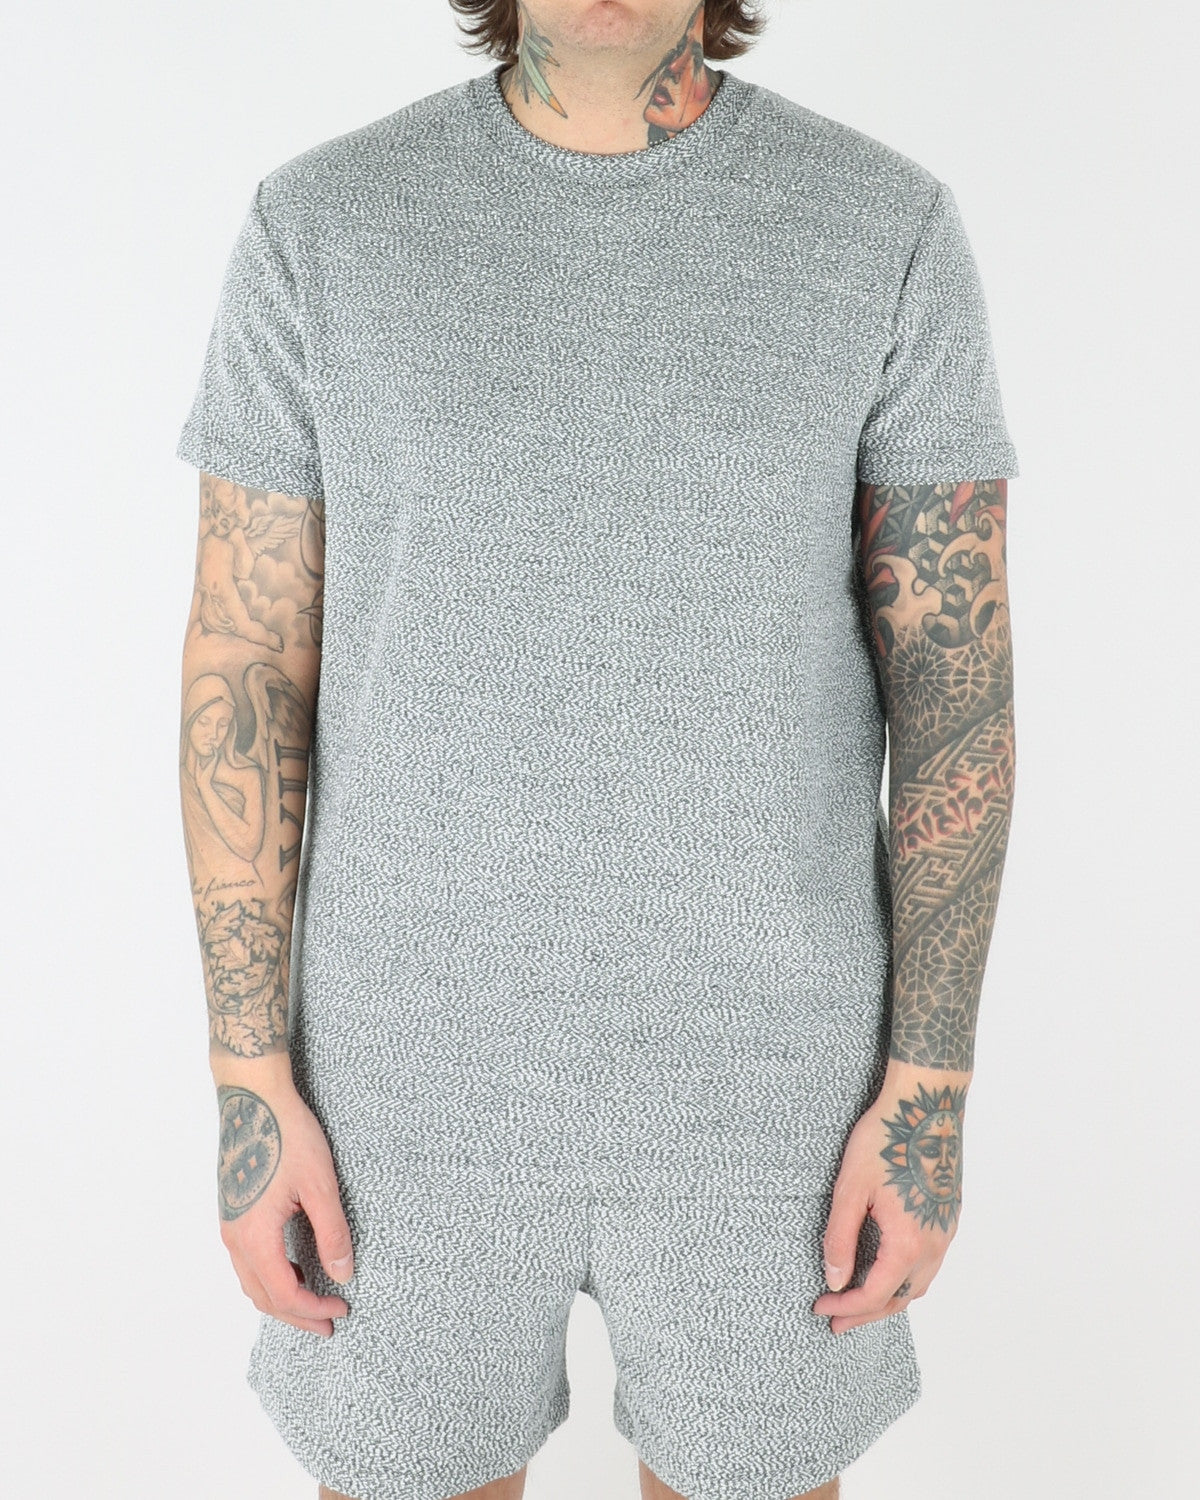 wac_we are copenhagen_augusto_o-neck t-shirt_dark grey melang_view_1_3